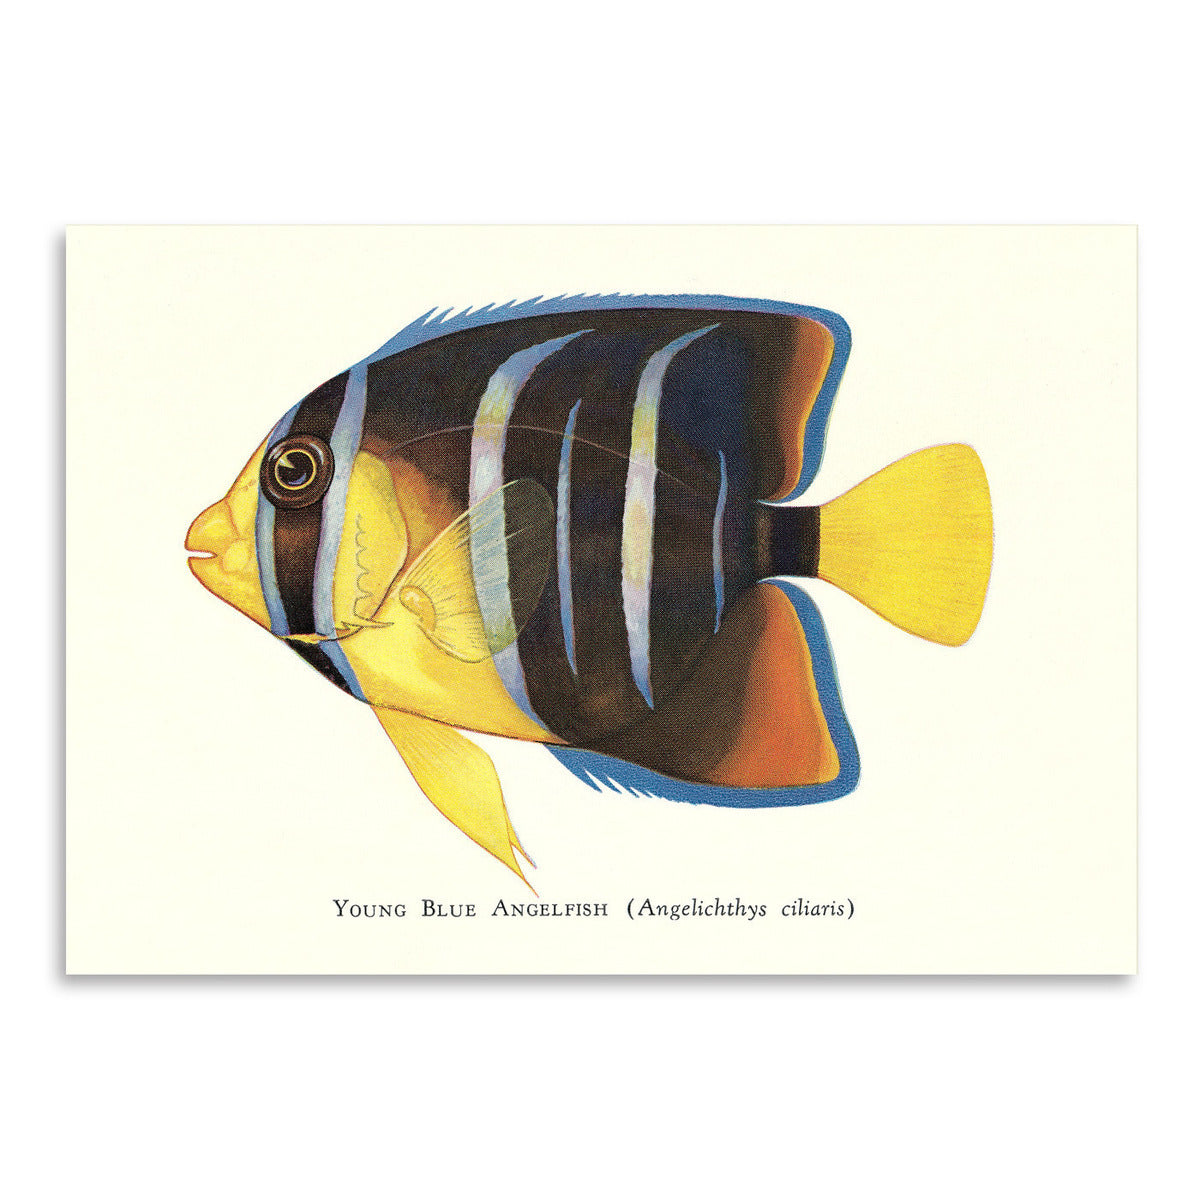 Young Blue Angelfish by Found Image Press Art Print - Art Print - Americanflat